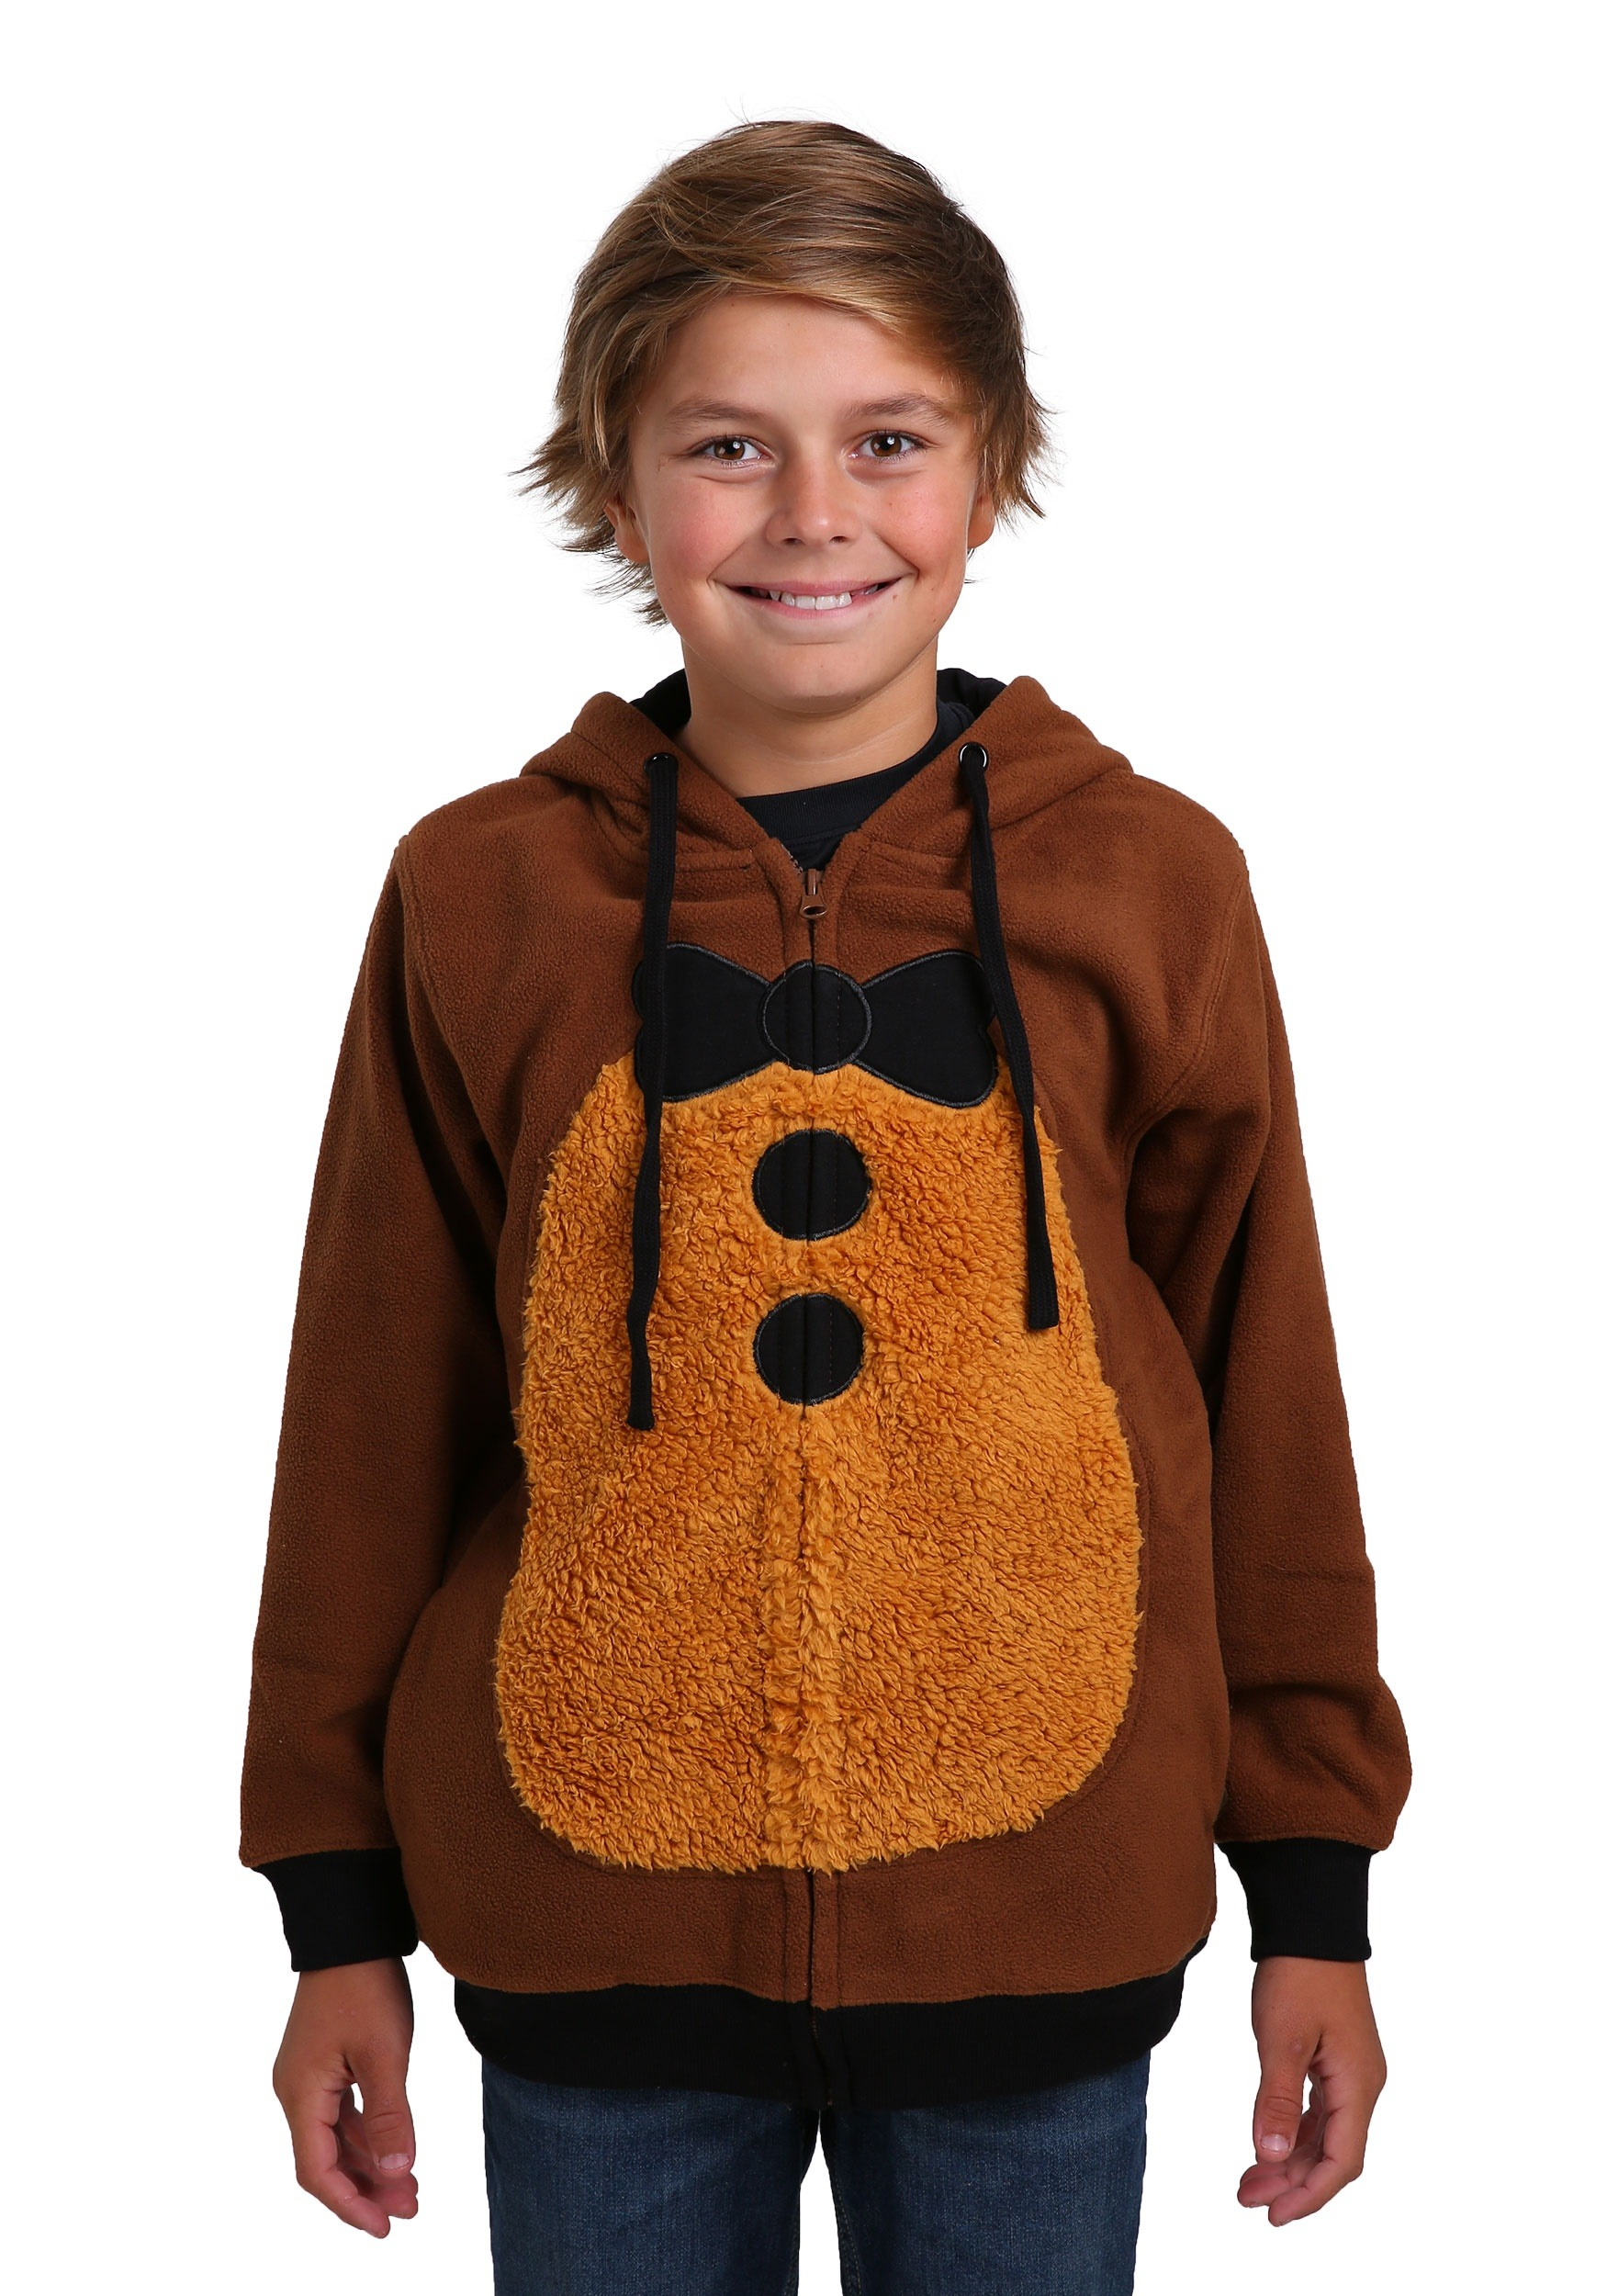 Five nights at freddys costume hoodie for kids